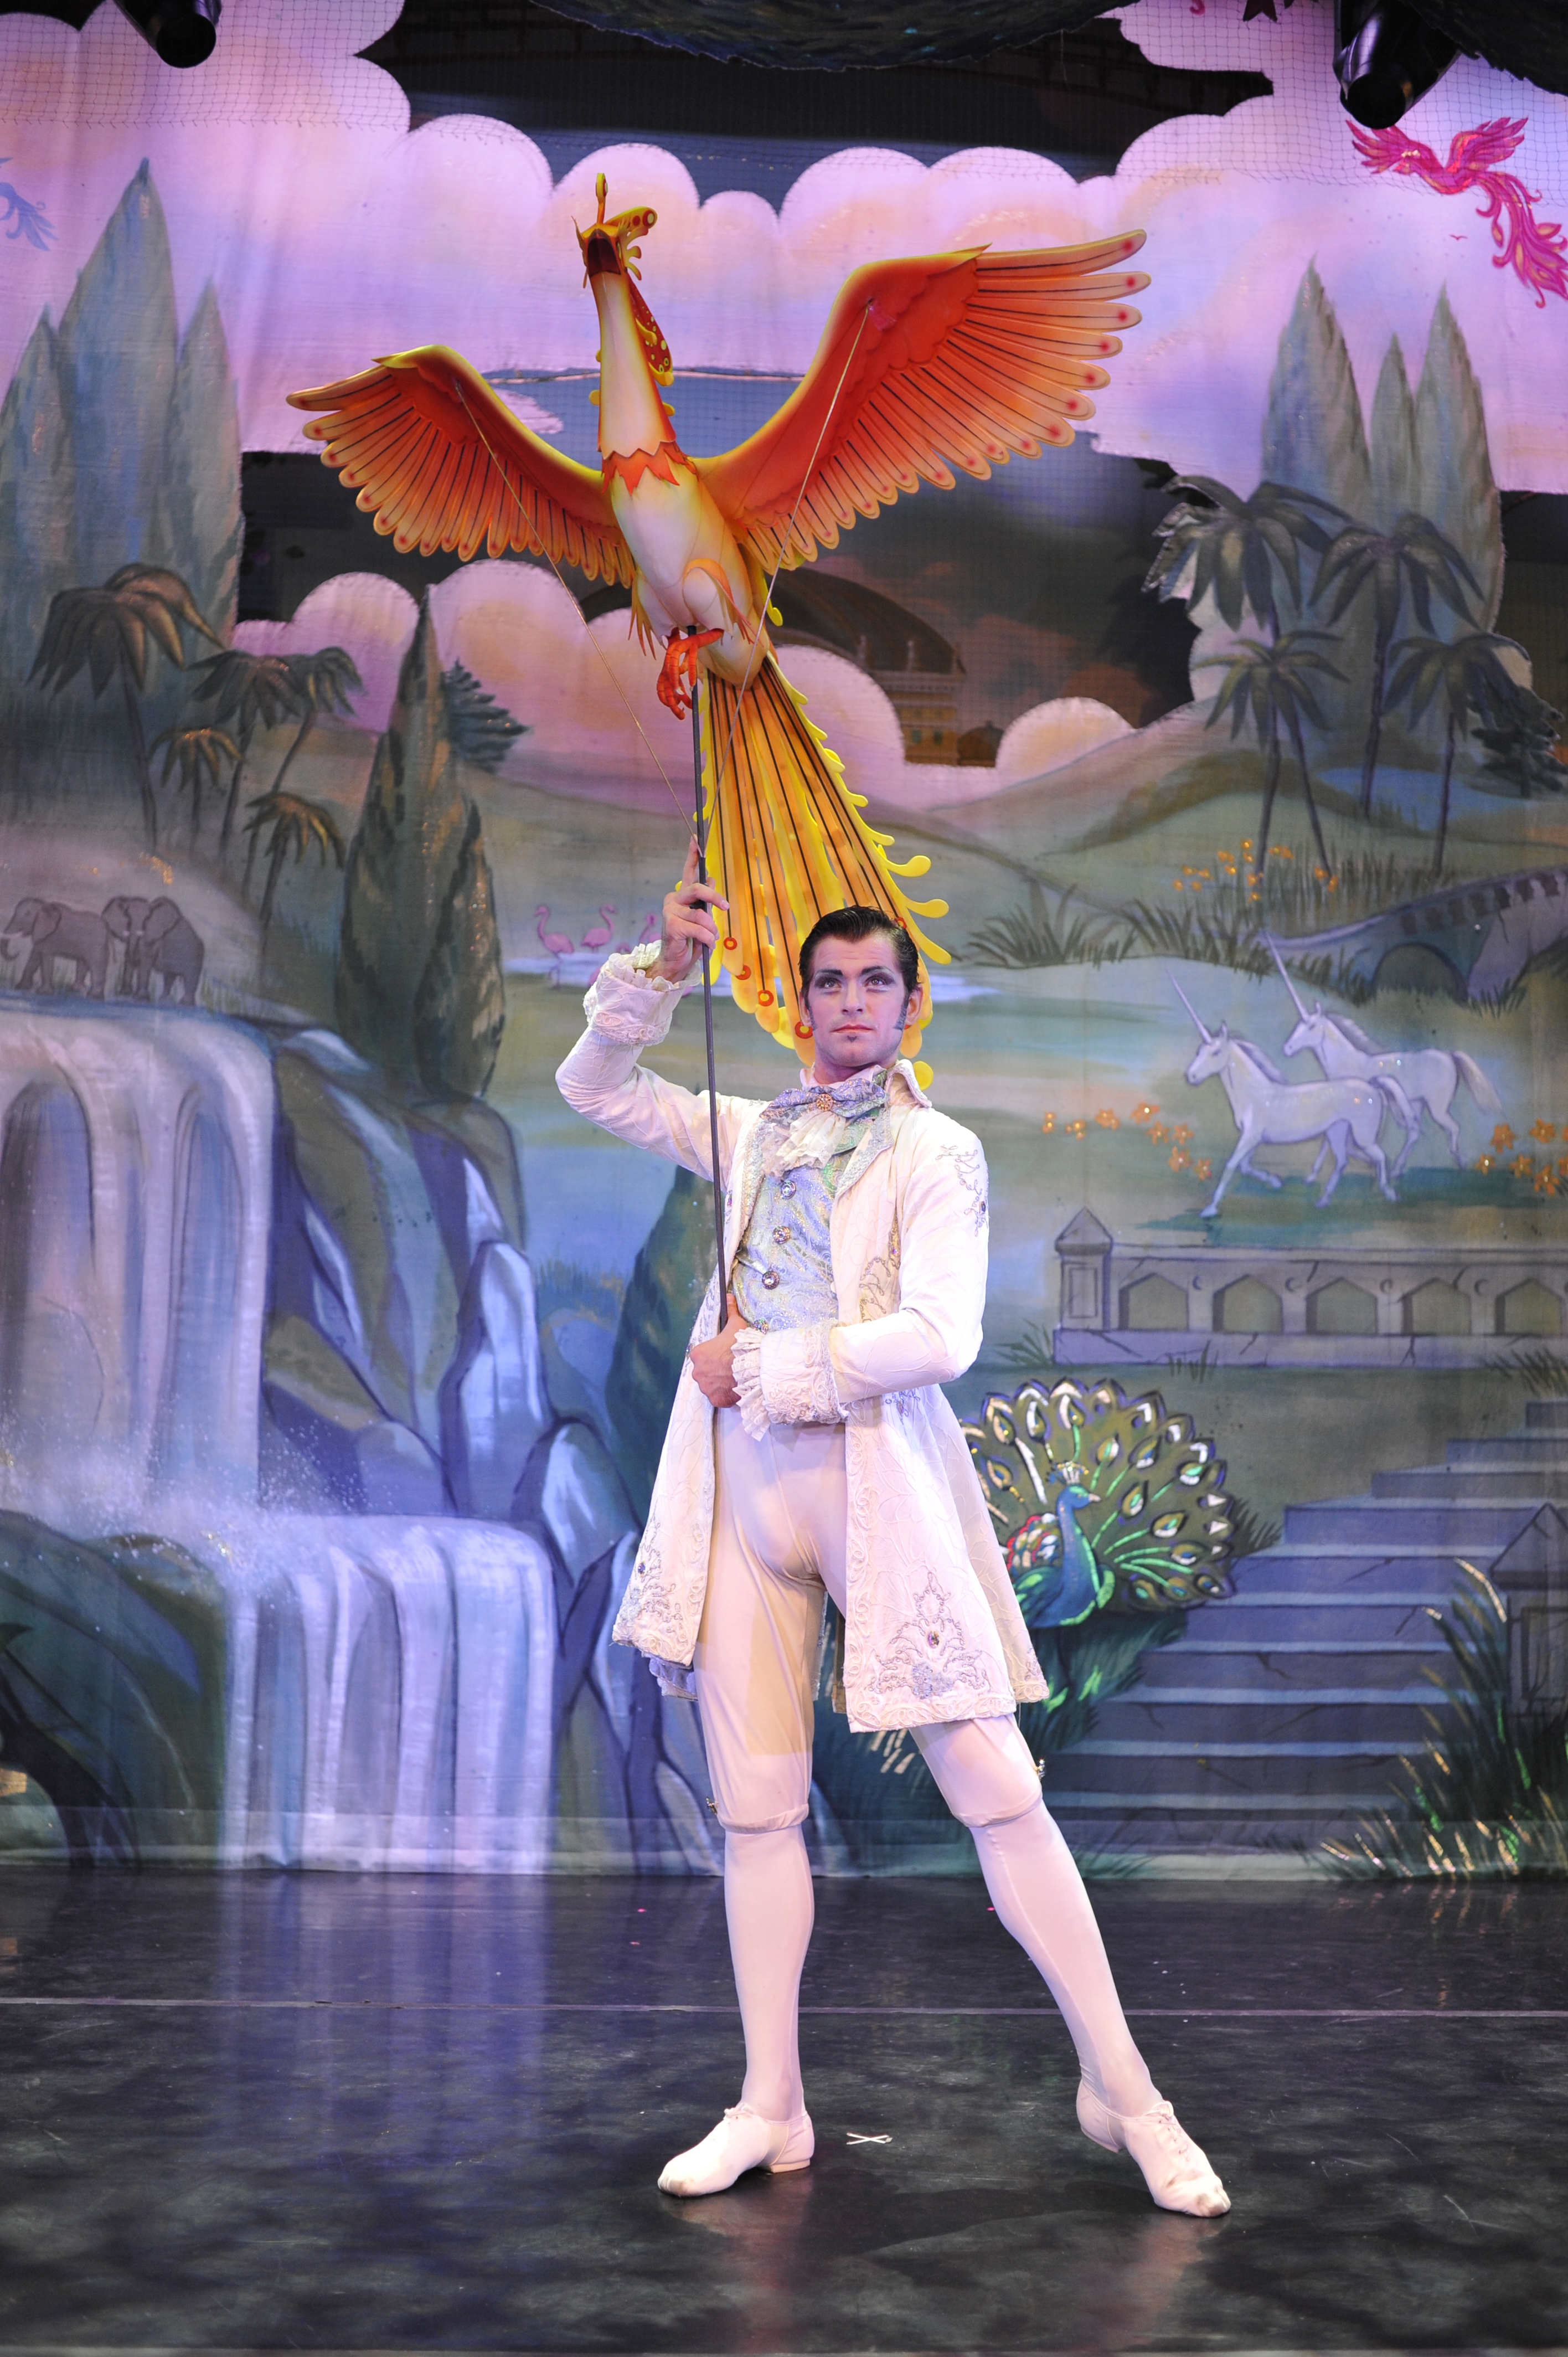 Moscow Ballet's Great Russian Nutcracker features flying birds by South Africa's Roger Titley